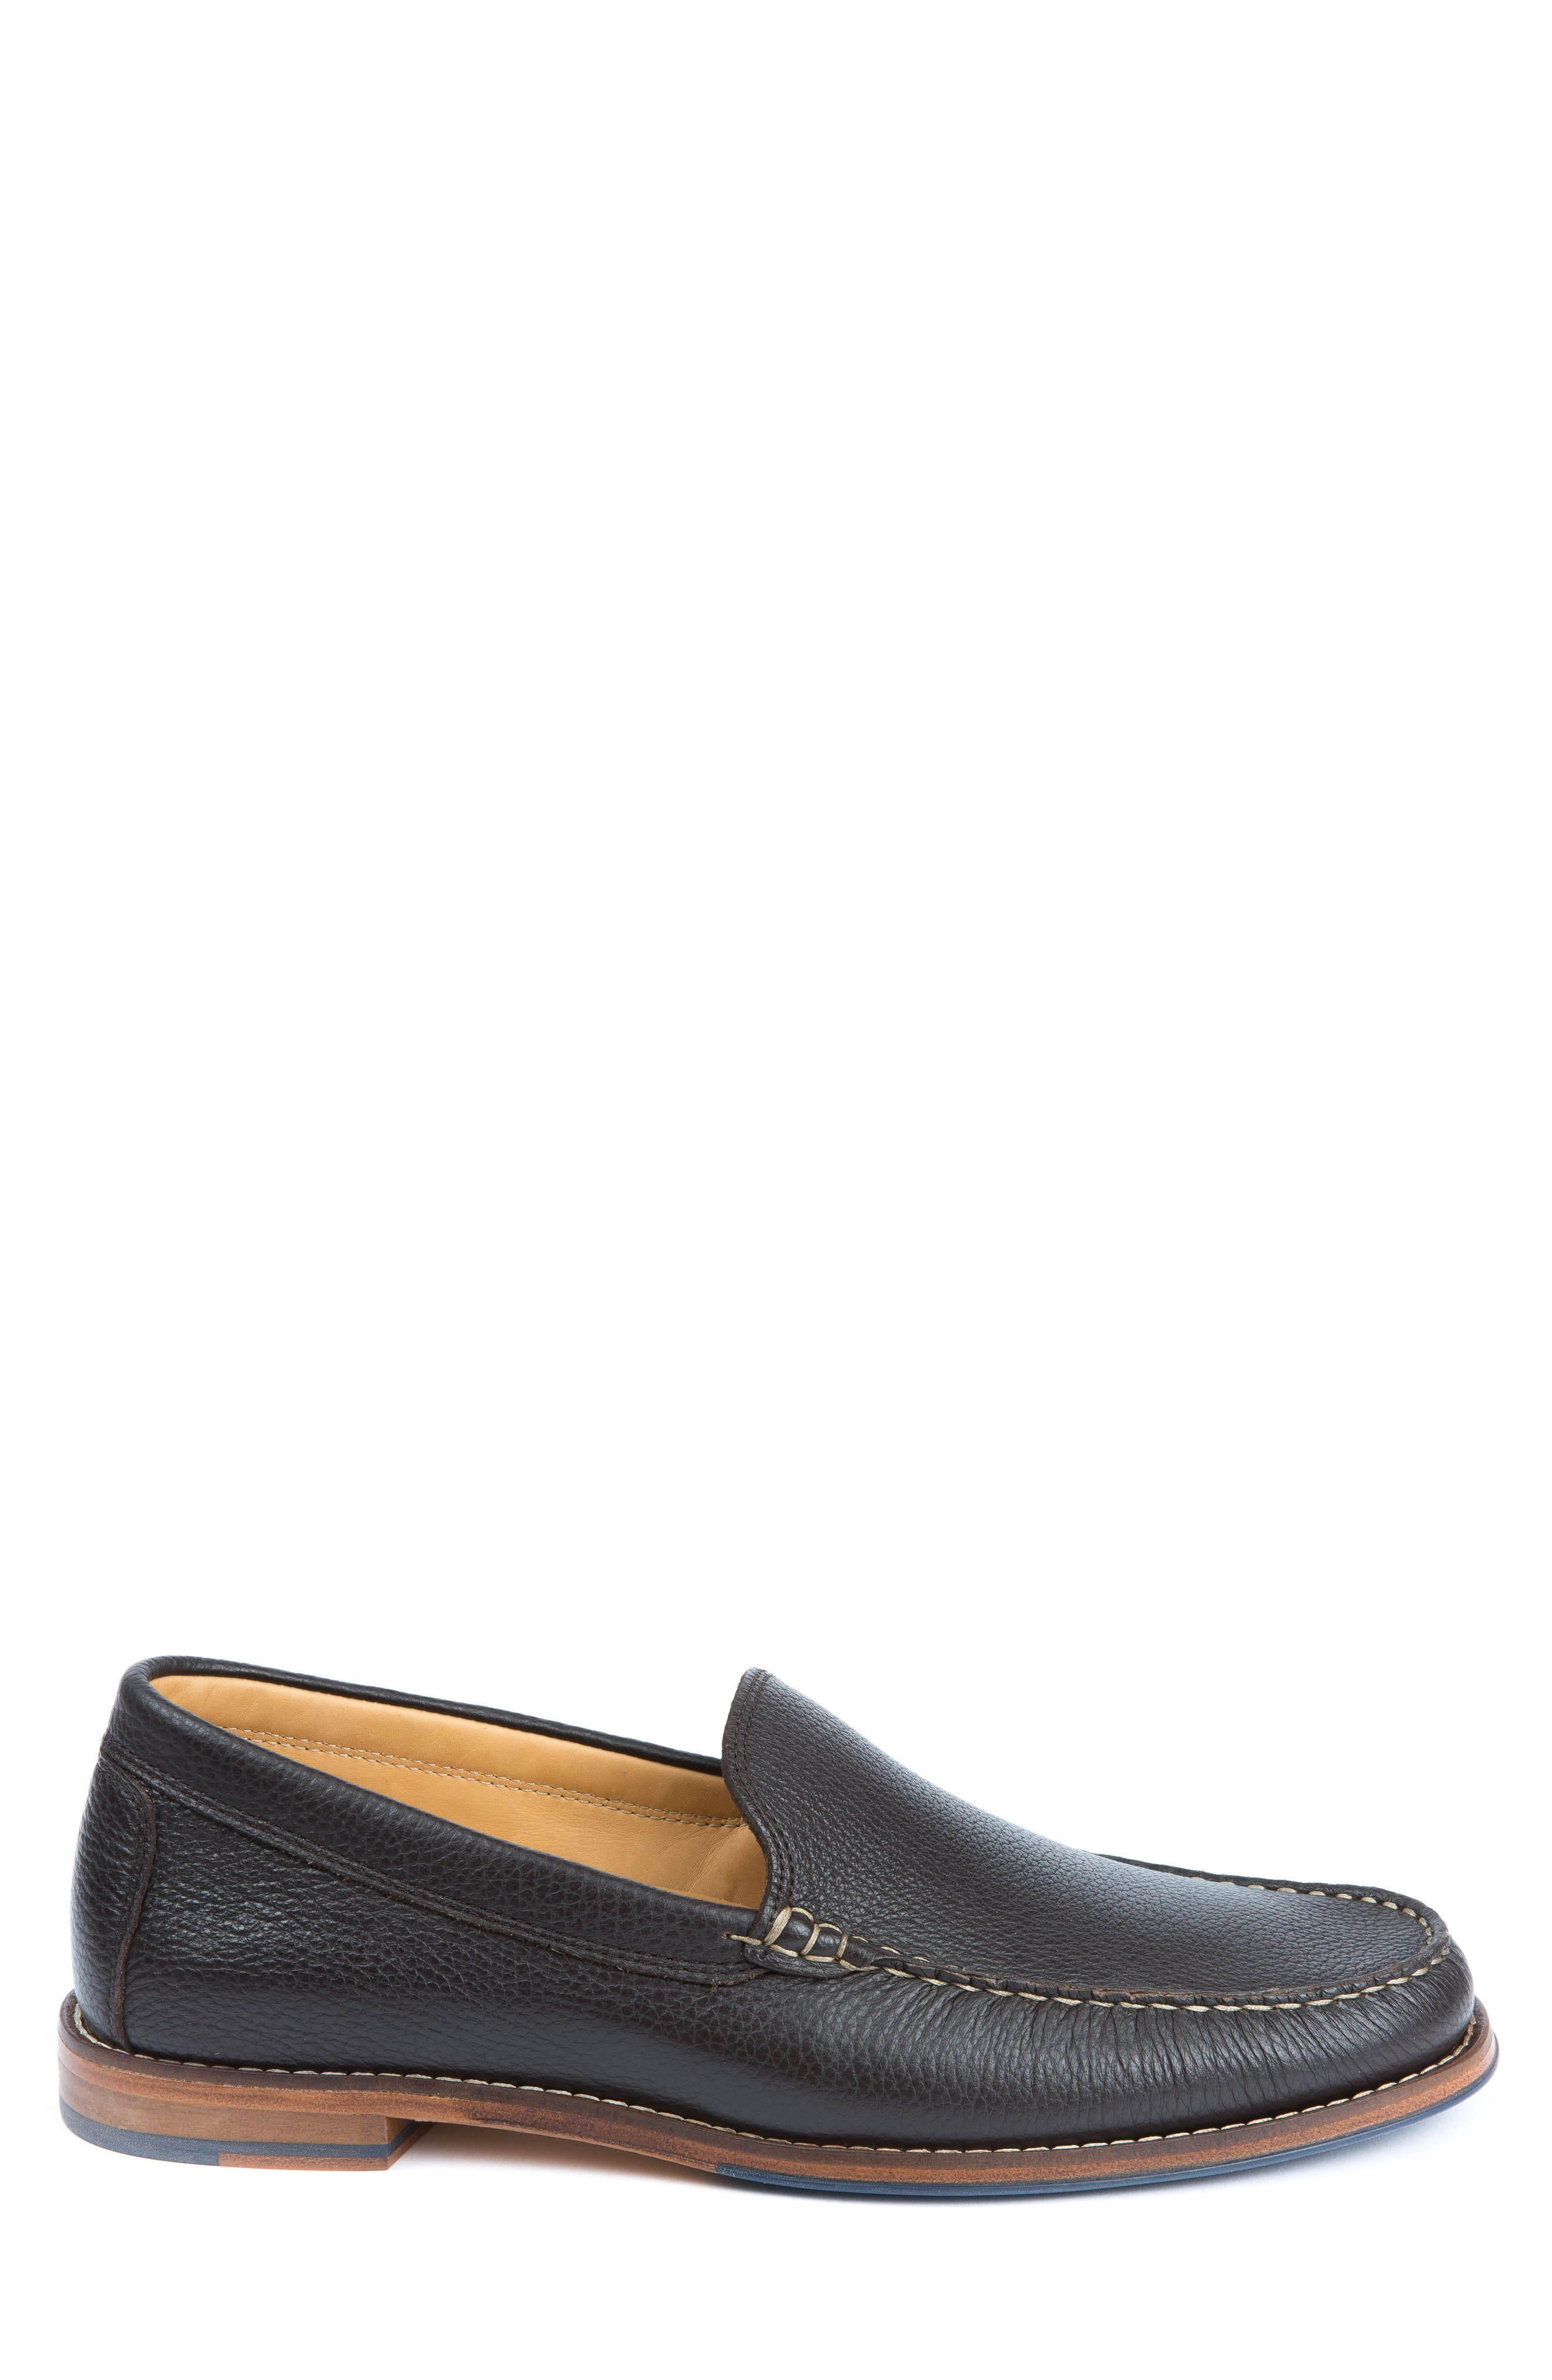 Alternate Image 3  - Austen Heller Caldwells Loafer (Men)